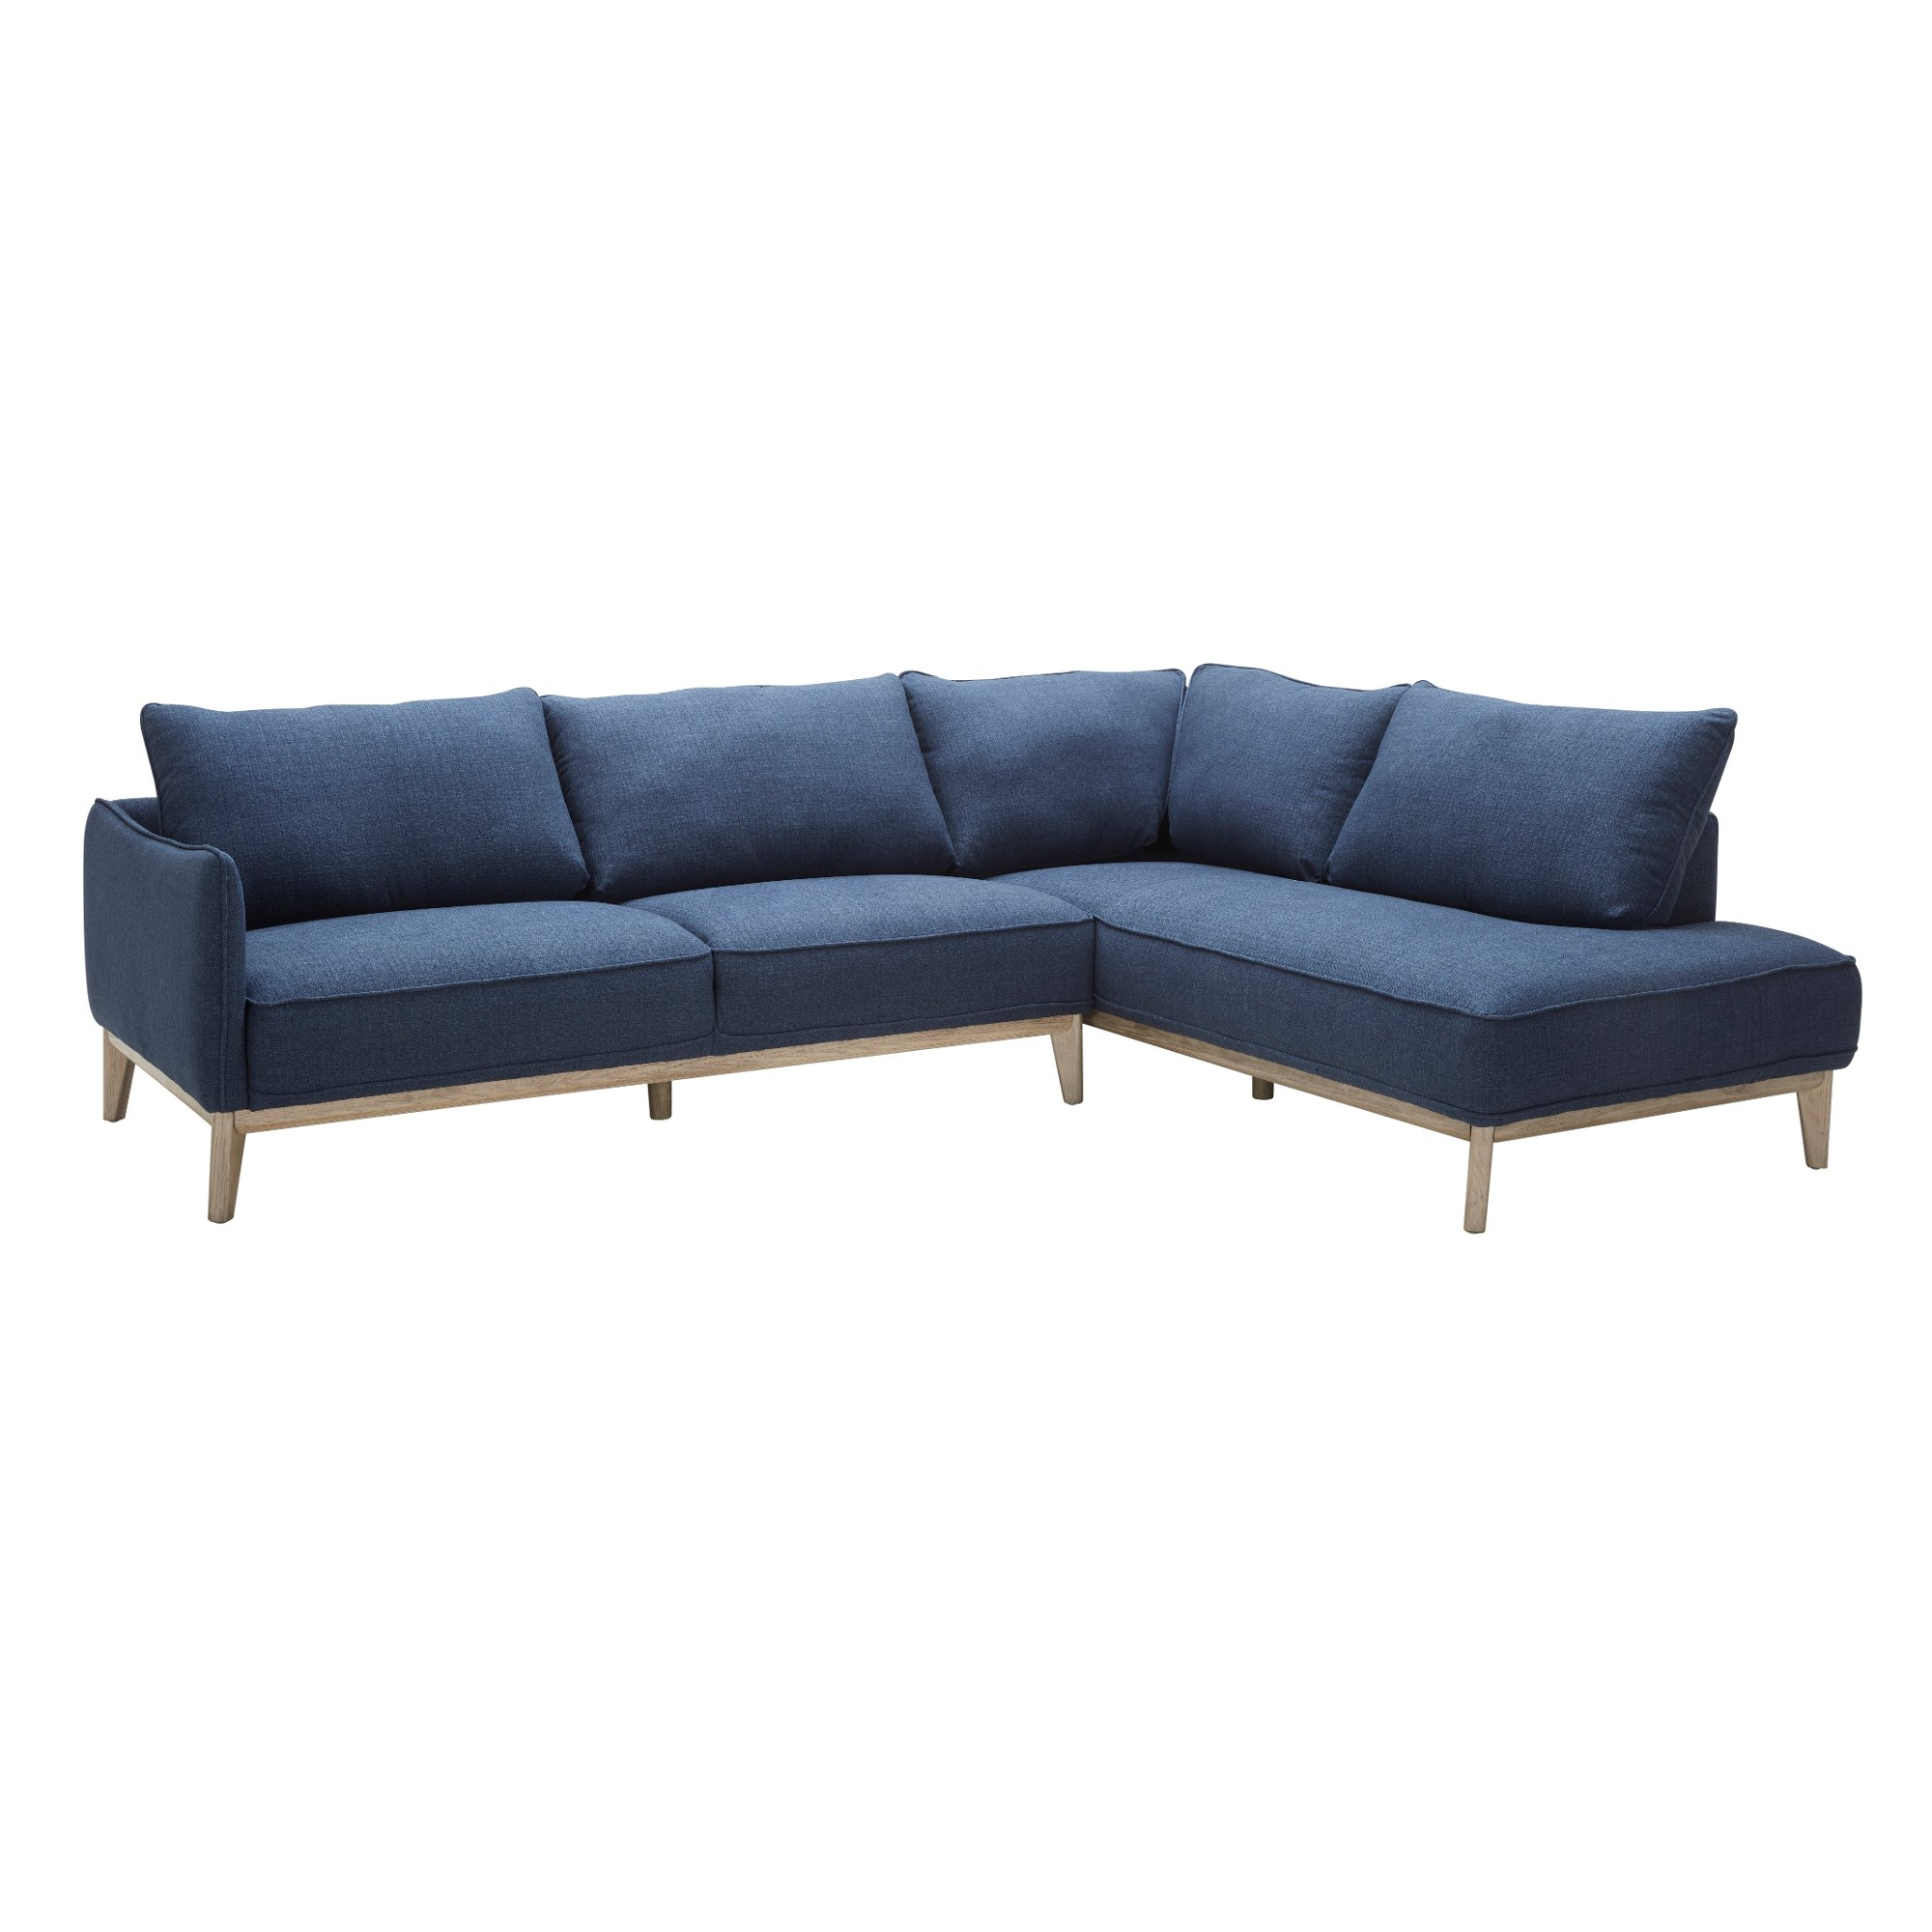 sectional sectionals home piece sofa blue overstock fabric shipping zahra today by for free sale christopher knight garden product